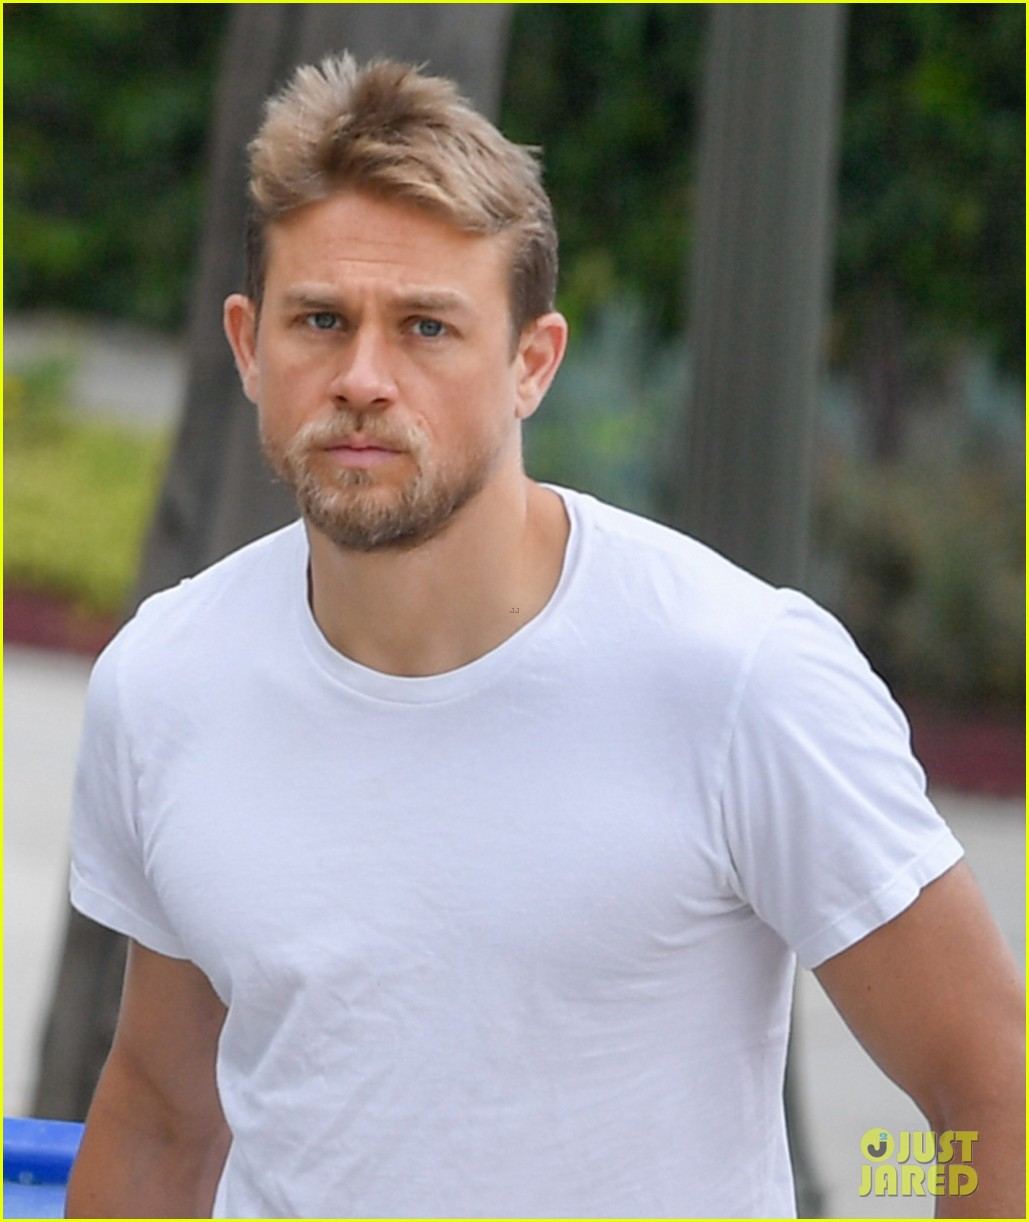 Charlie Hunnam Steps Out In Pajamas To Retrieve Trash Bin Photo 3920106 Charlie Hunnam Pictures Just Jared